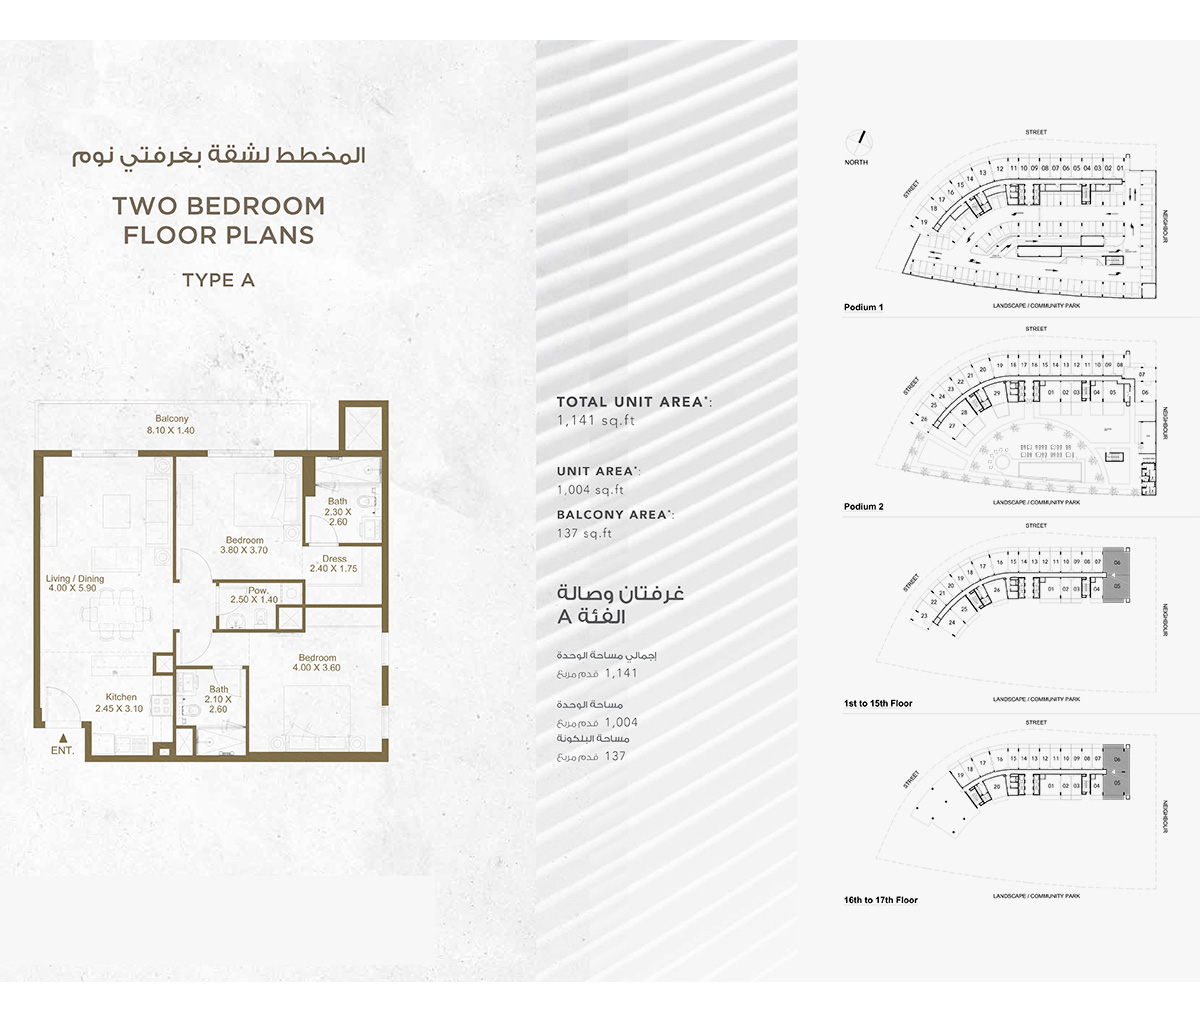 2 Bedroom Type A, Size 1141 sq.ft